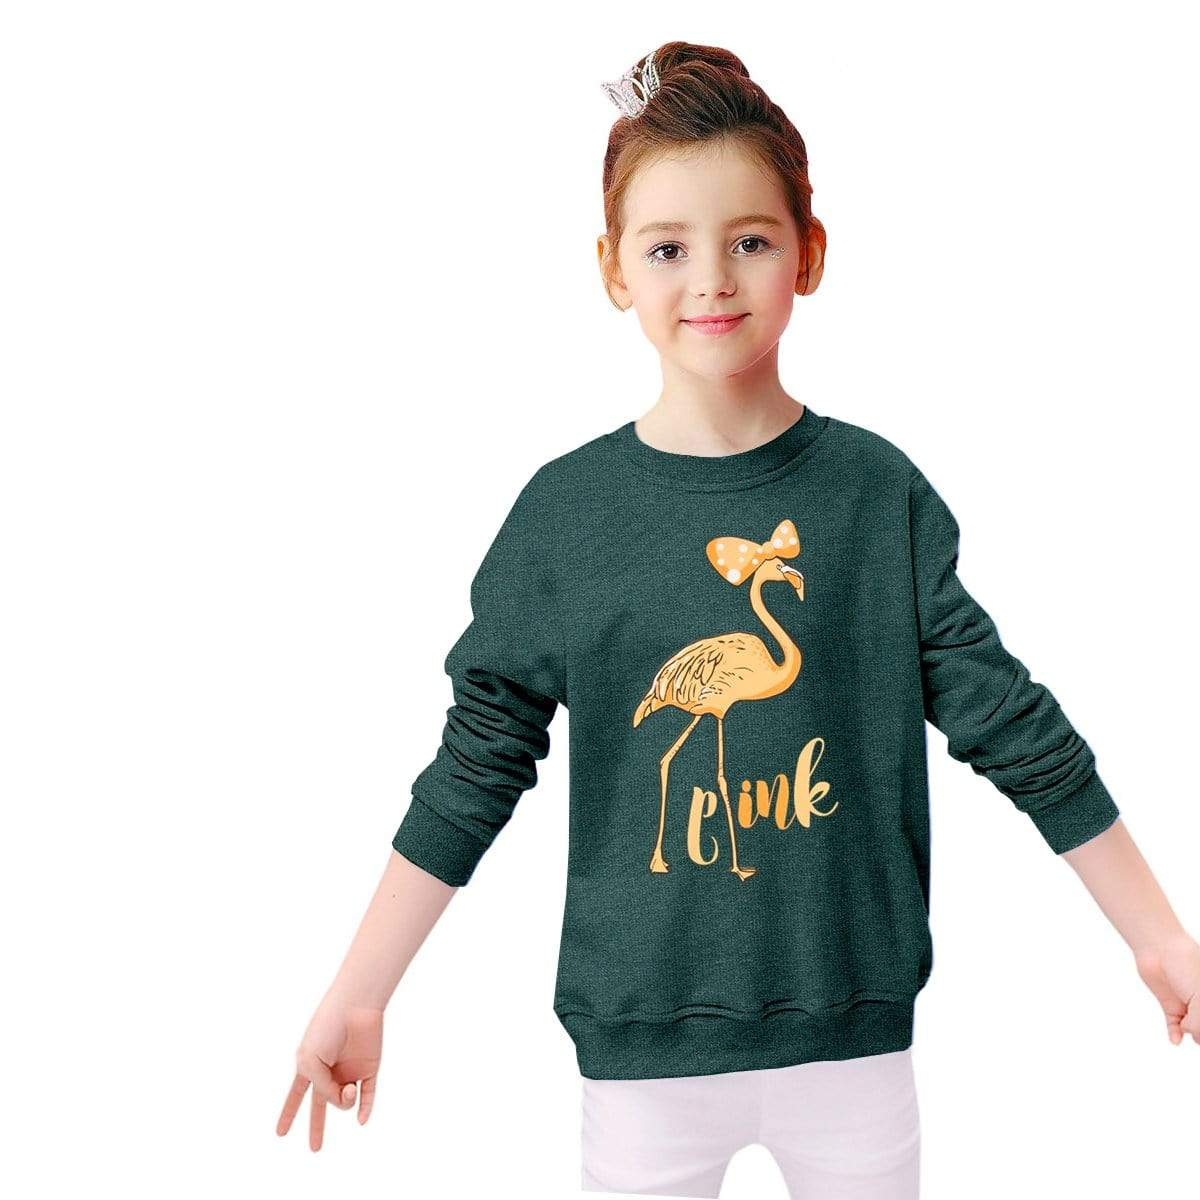 Stone Harbor Kid's Sweatshirt Sea Green / 2-3 Years Girl's STONE HARBOR Pink Ostro CREW NECK SWEATSHIRT